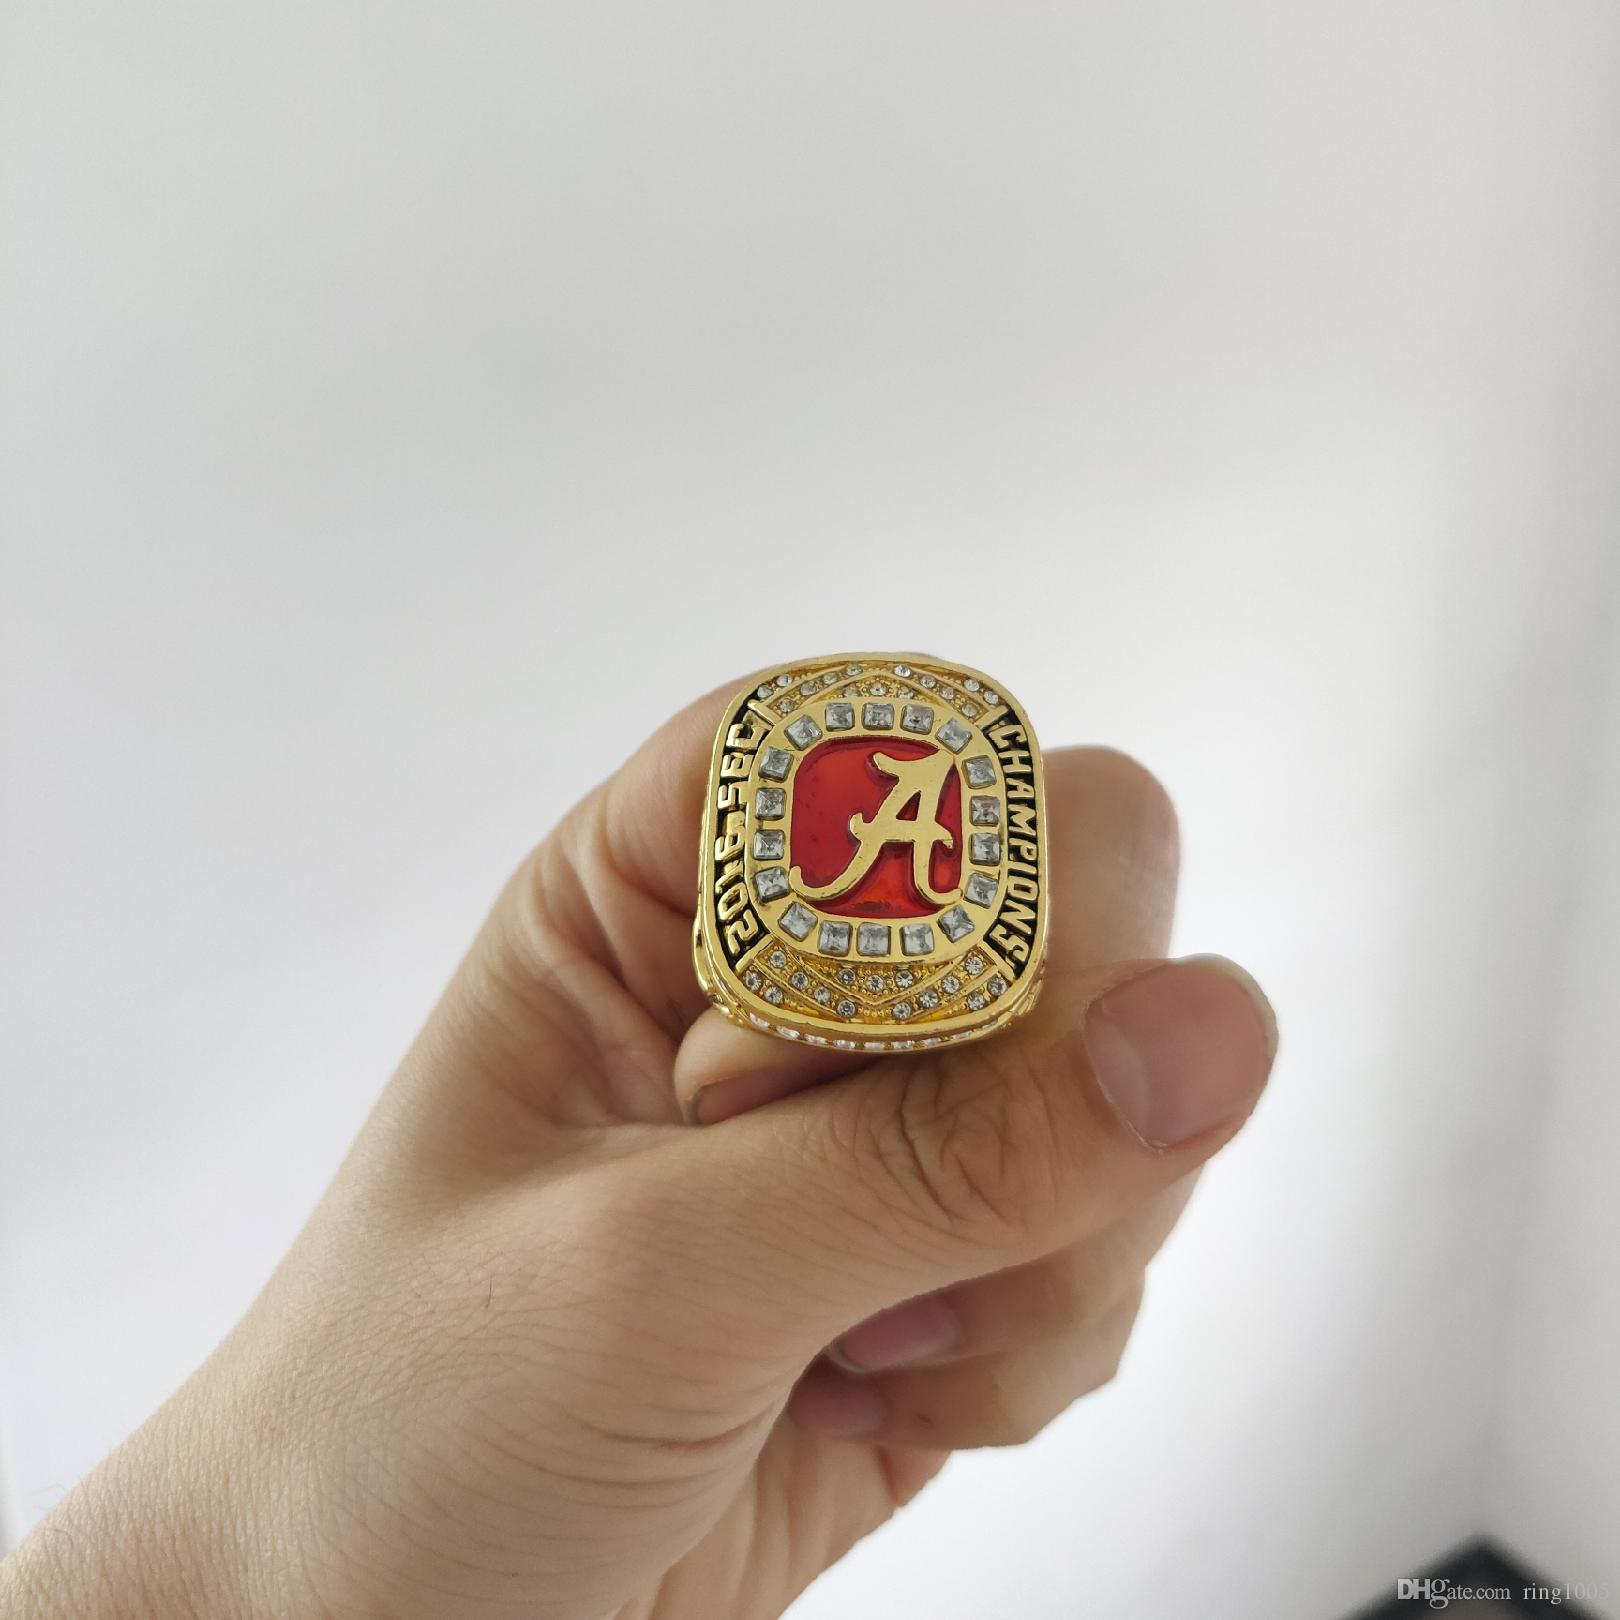 sports shoes d7155 76ae3 2019 wholesale 16 Alabama Crimson Tide SEC Football Championship Ring Fan  Men Gift Wholesale Drop Shipping